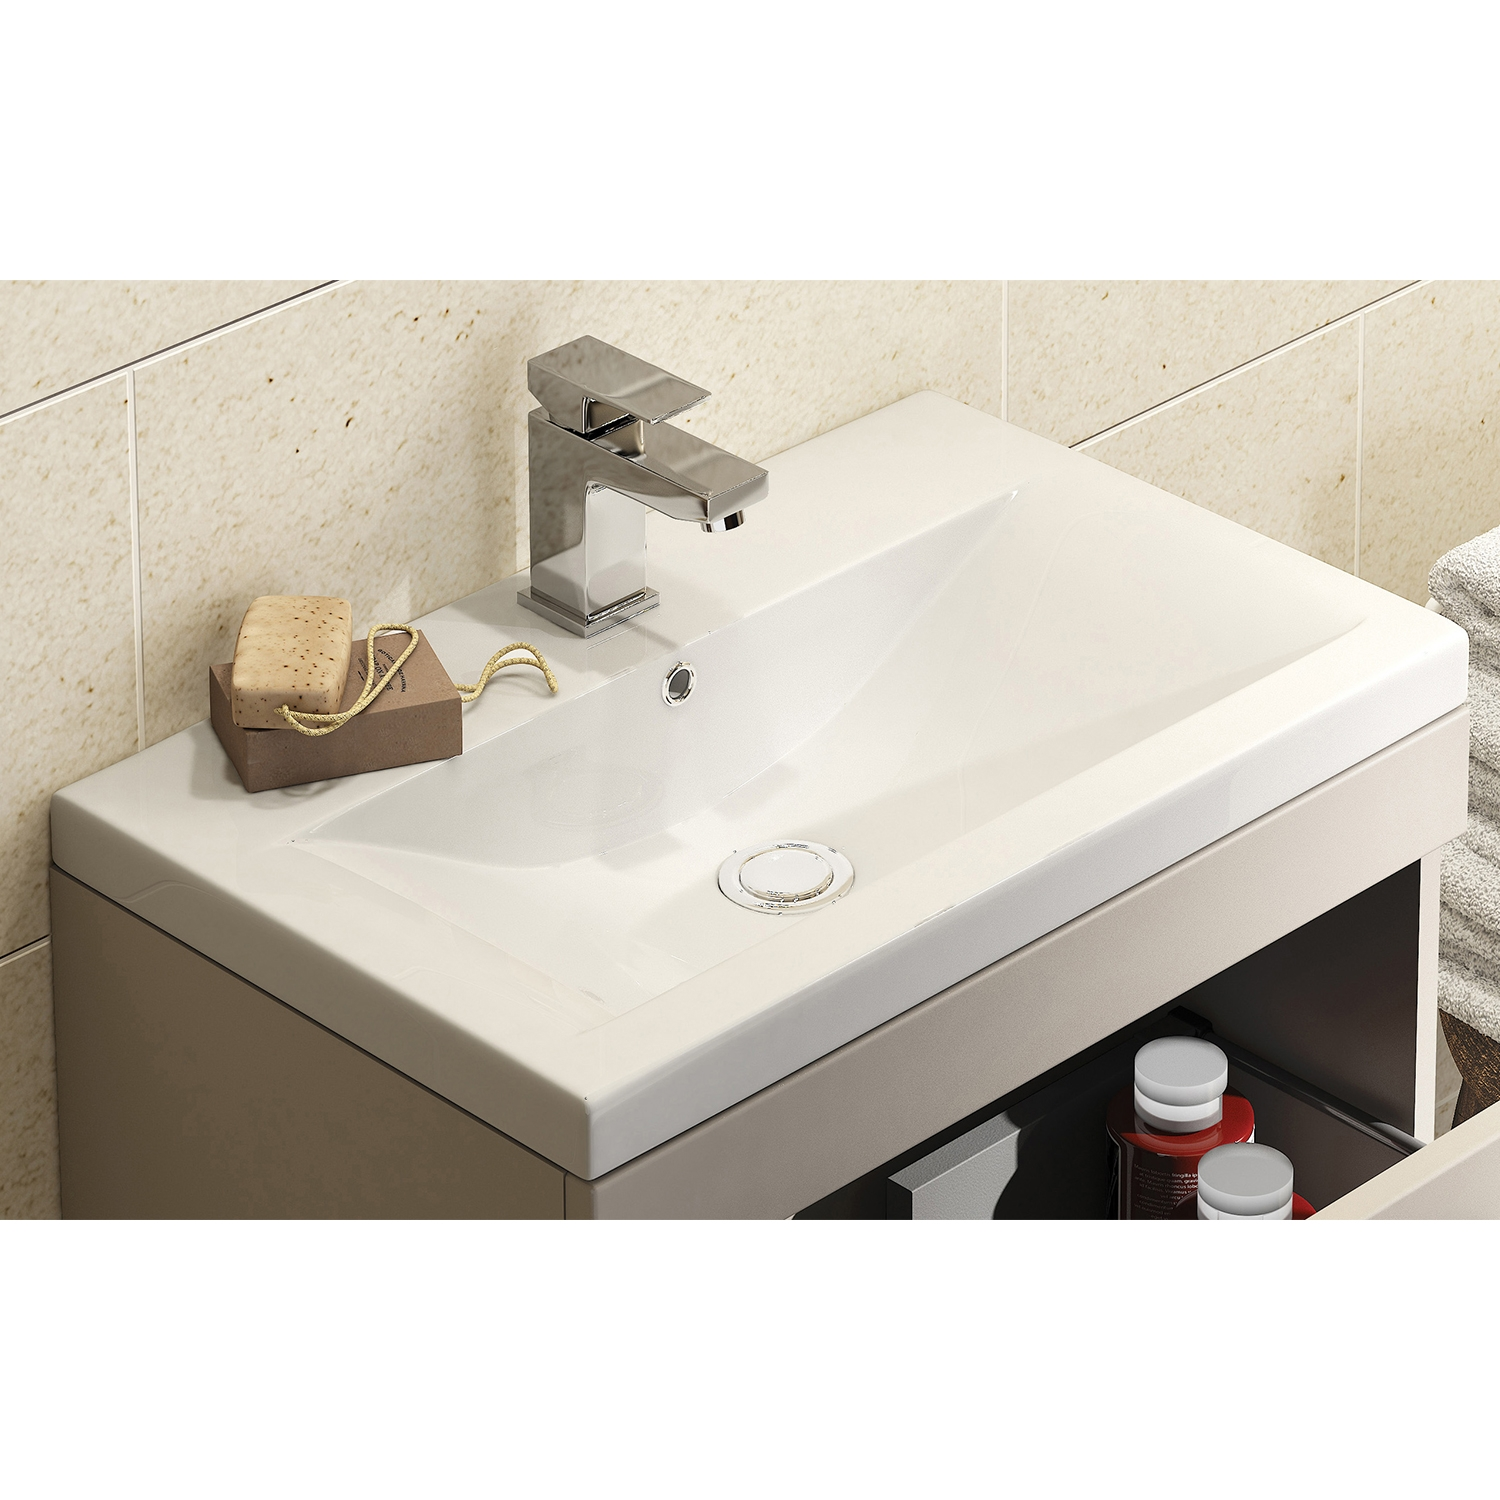 Premier Shipton Wall Hung 1-Drawer Vanity Unit with Basin 500mm Wide - Stone Grey 1 Tap Hole